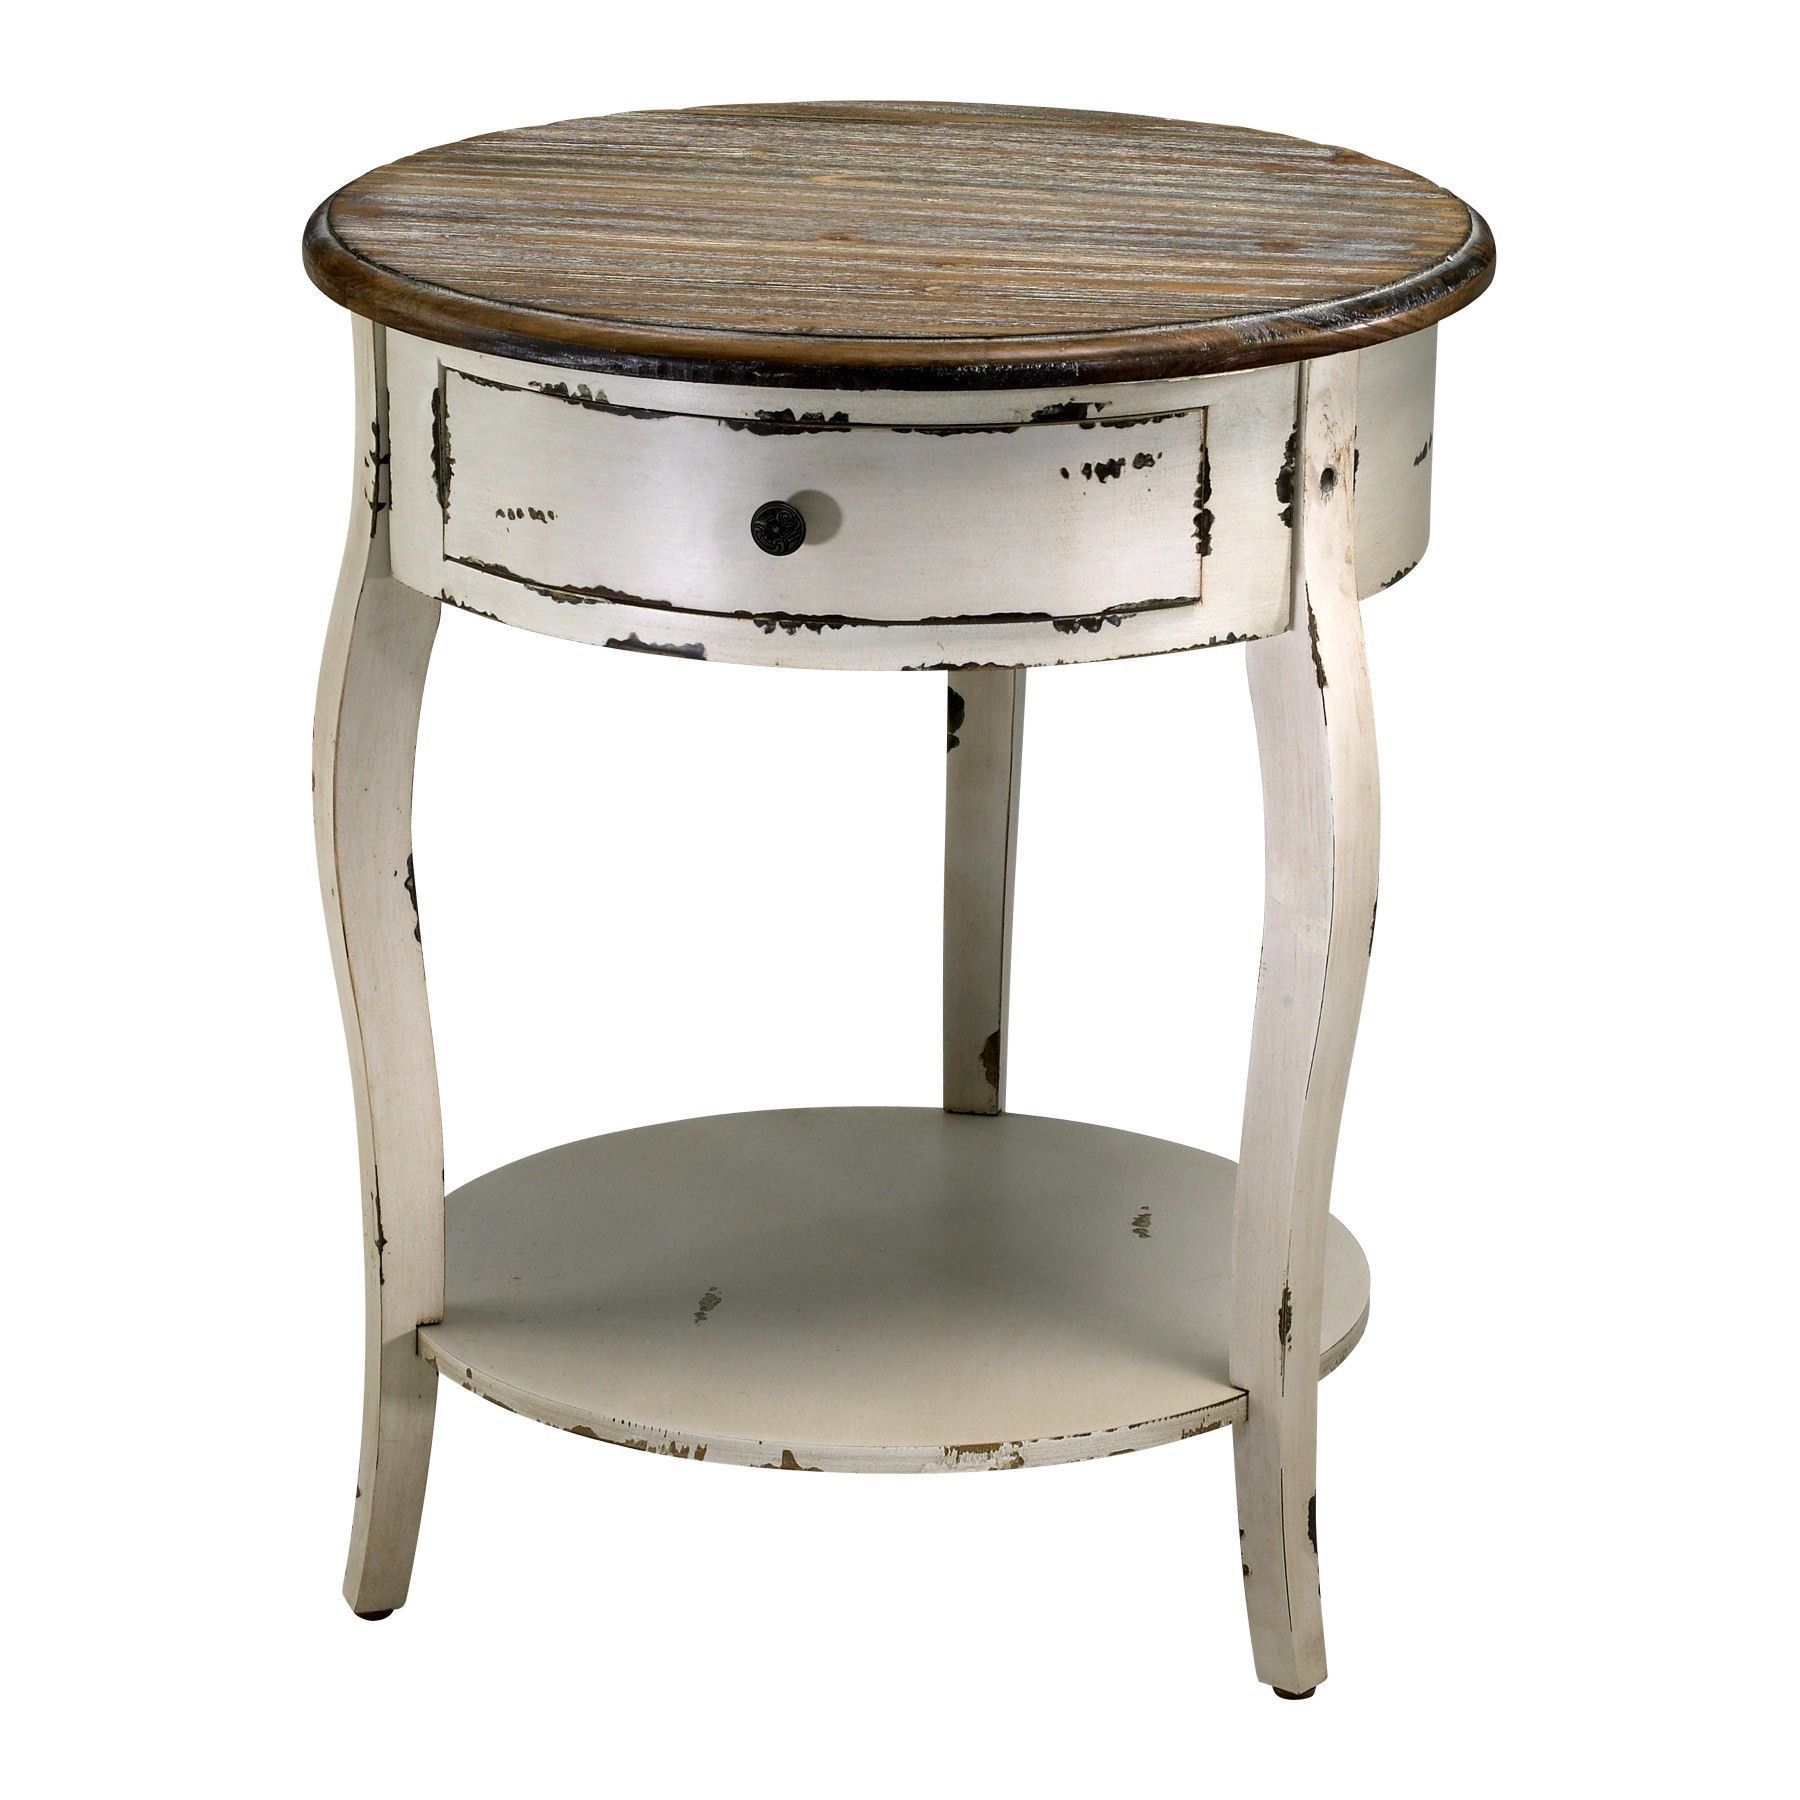 abelard side table cyan design paint rustic corner accent this beautiful round features off white distressed painted finish and natural wood top center drawer open shelf make barn